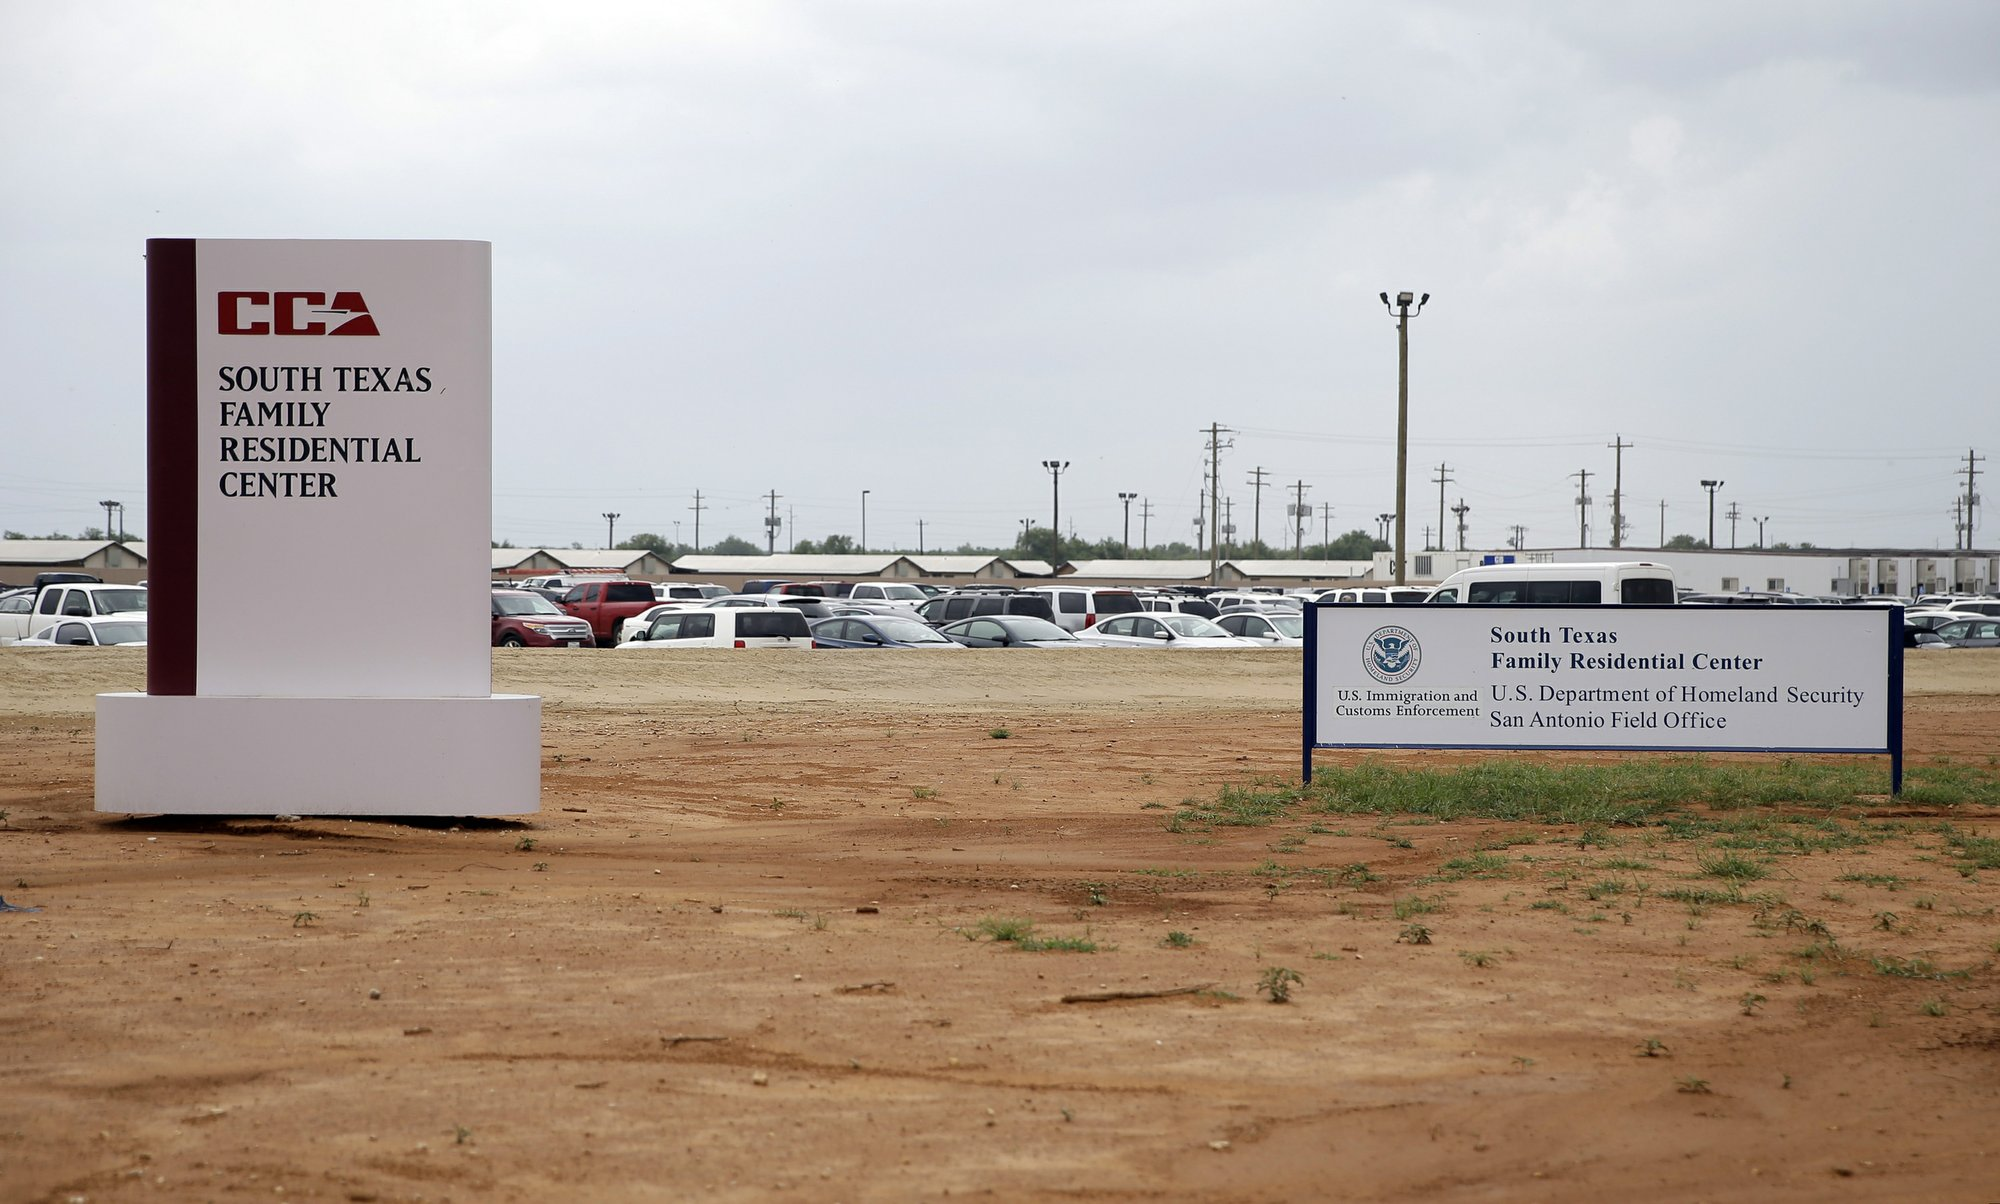 Migrant mom sues over toddler's death after detention